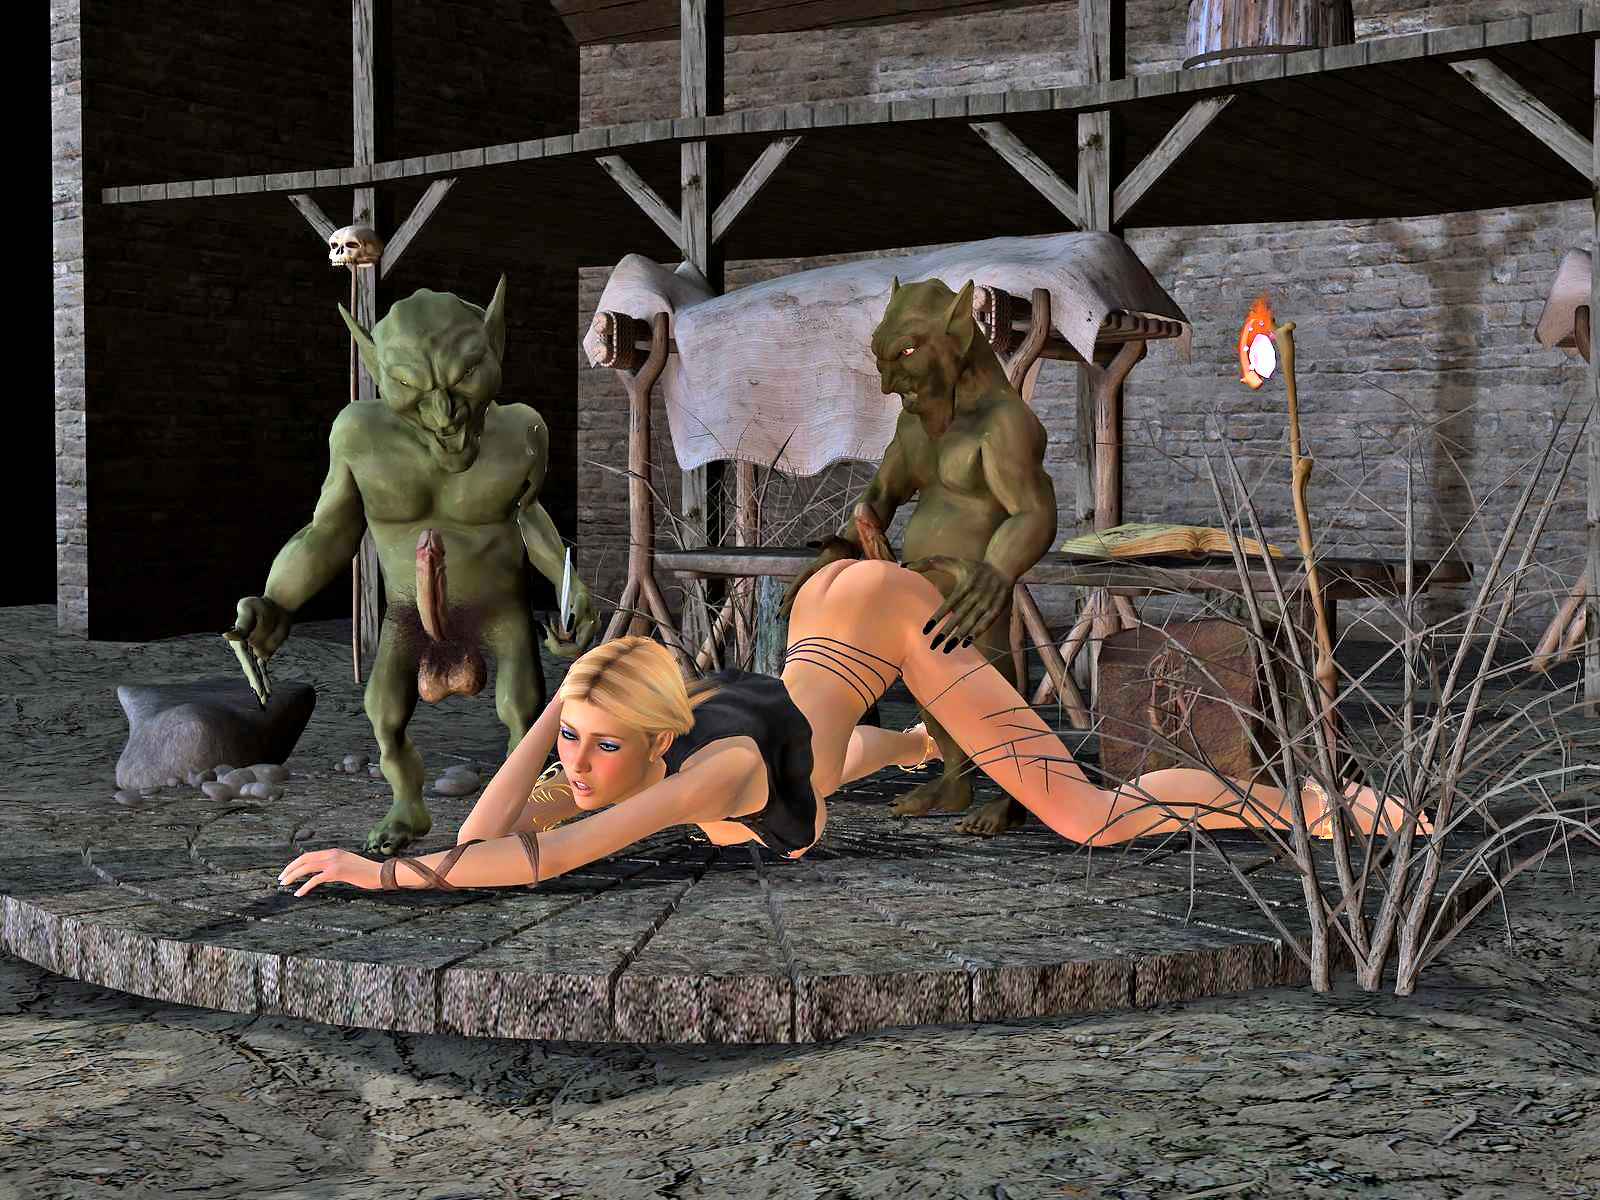 Elves rape stories pornos clip